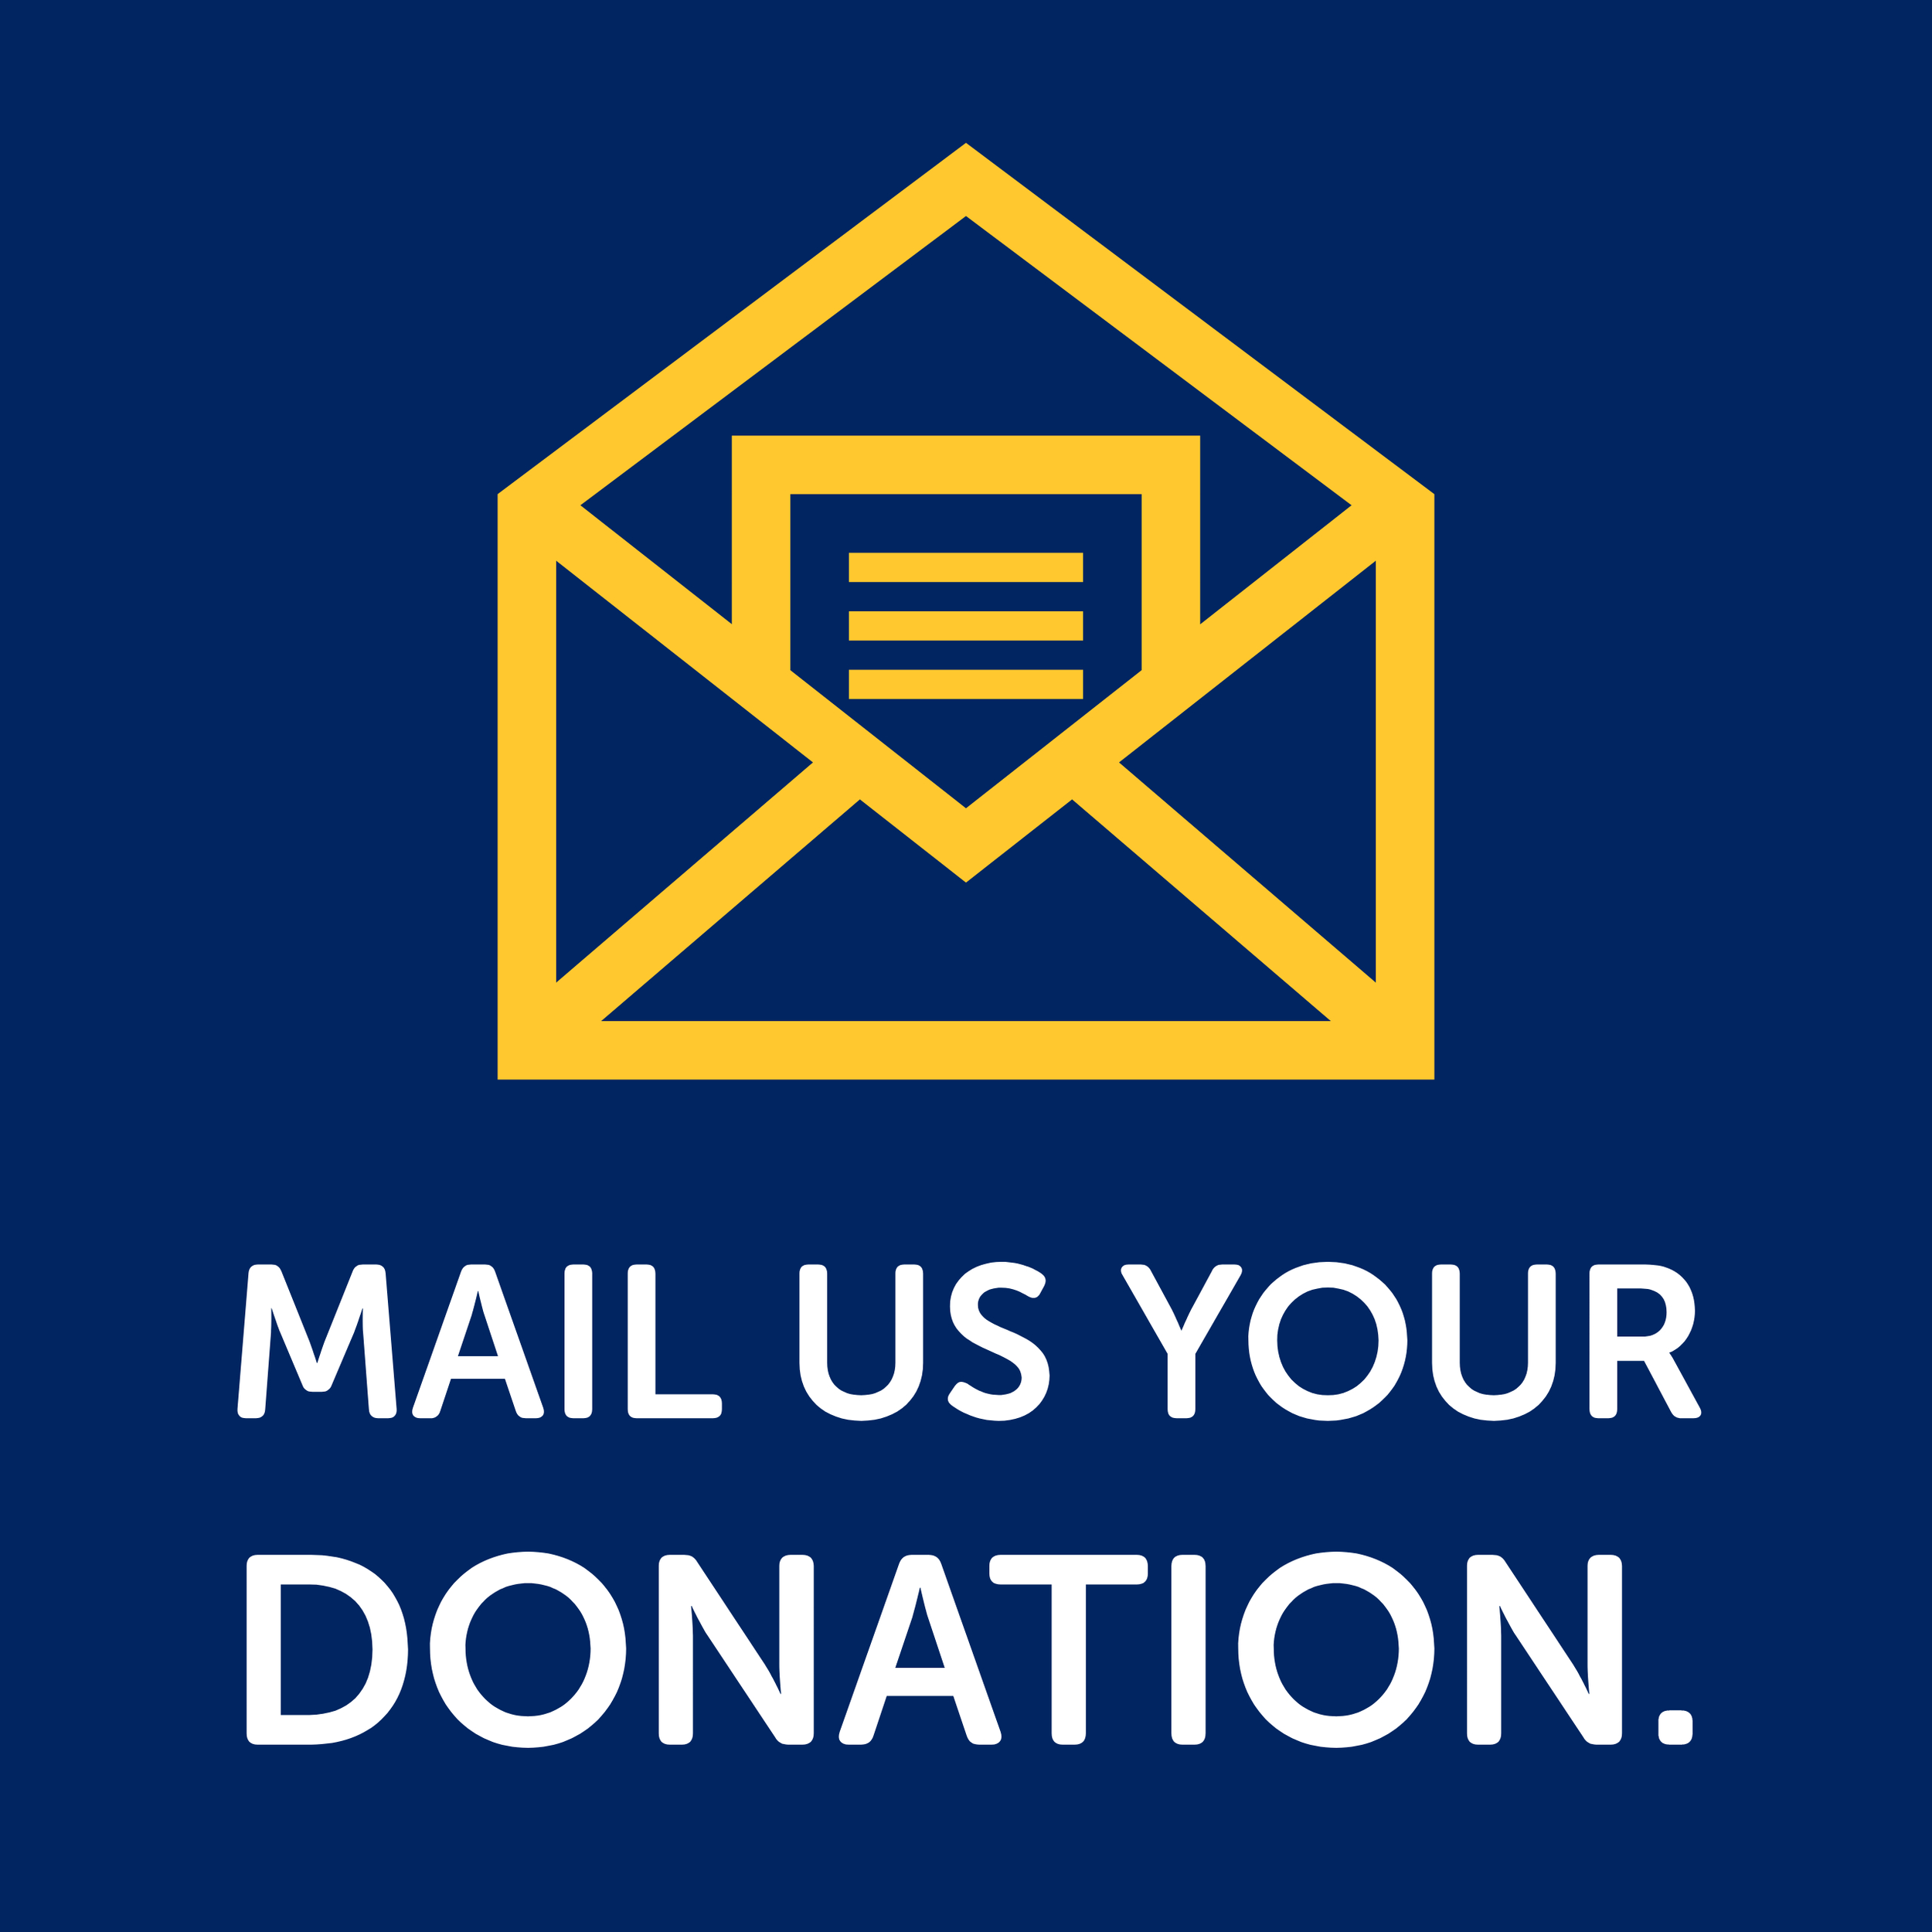 Mail us your donation.